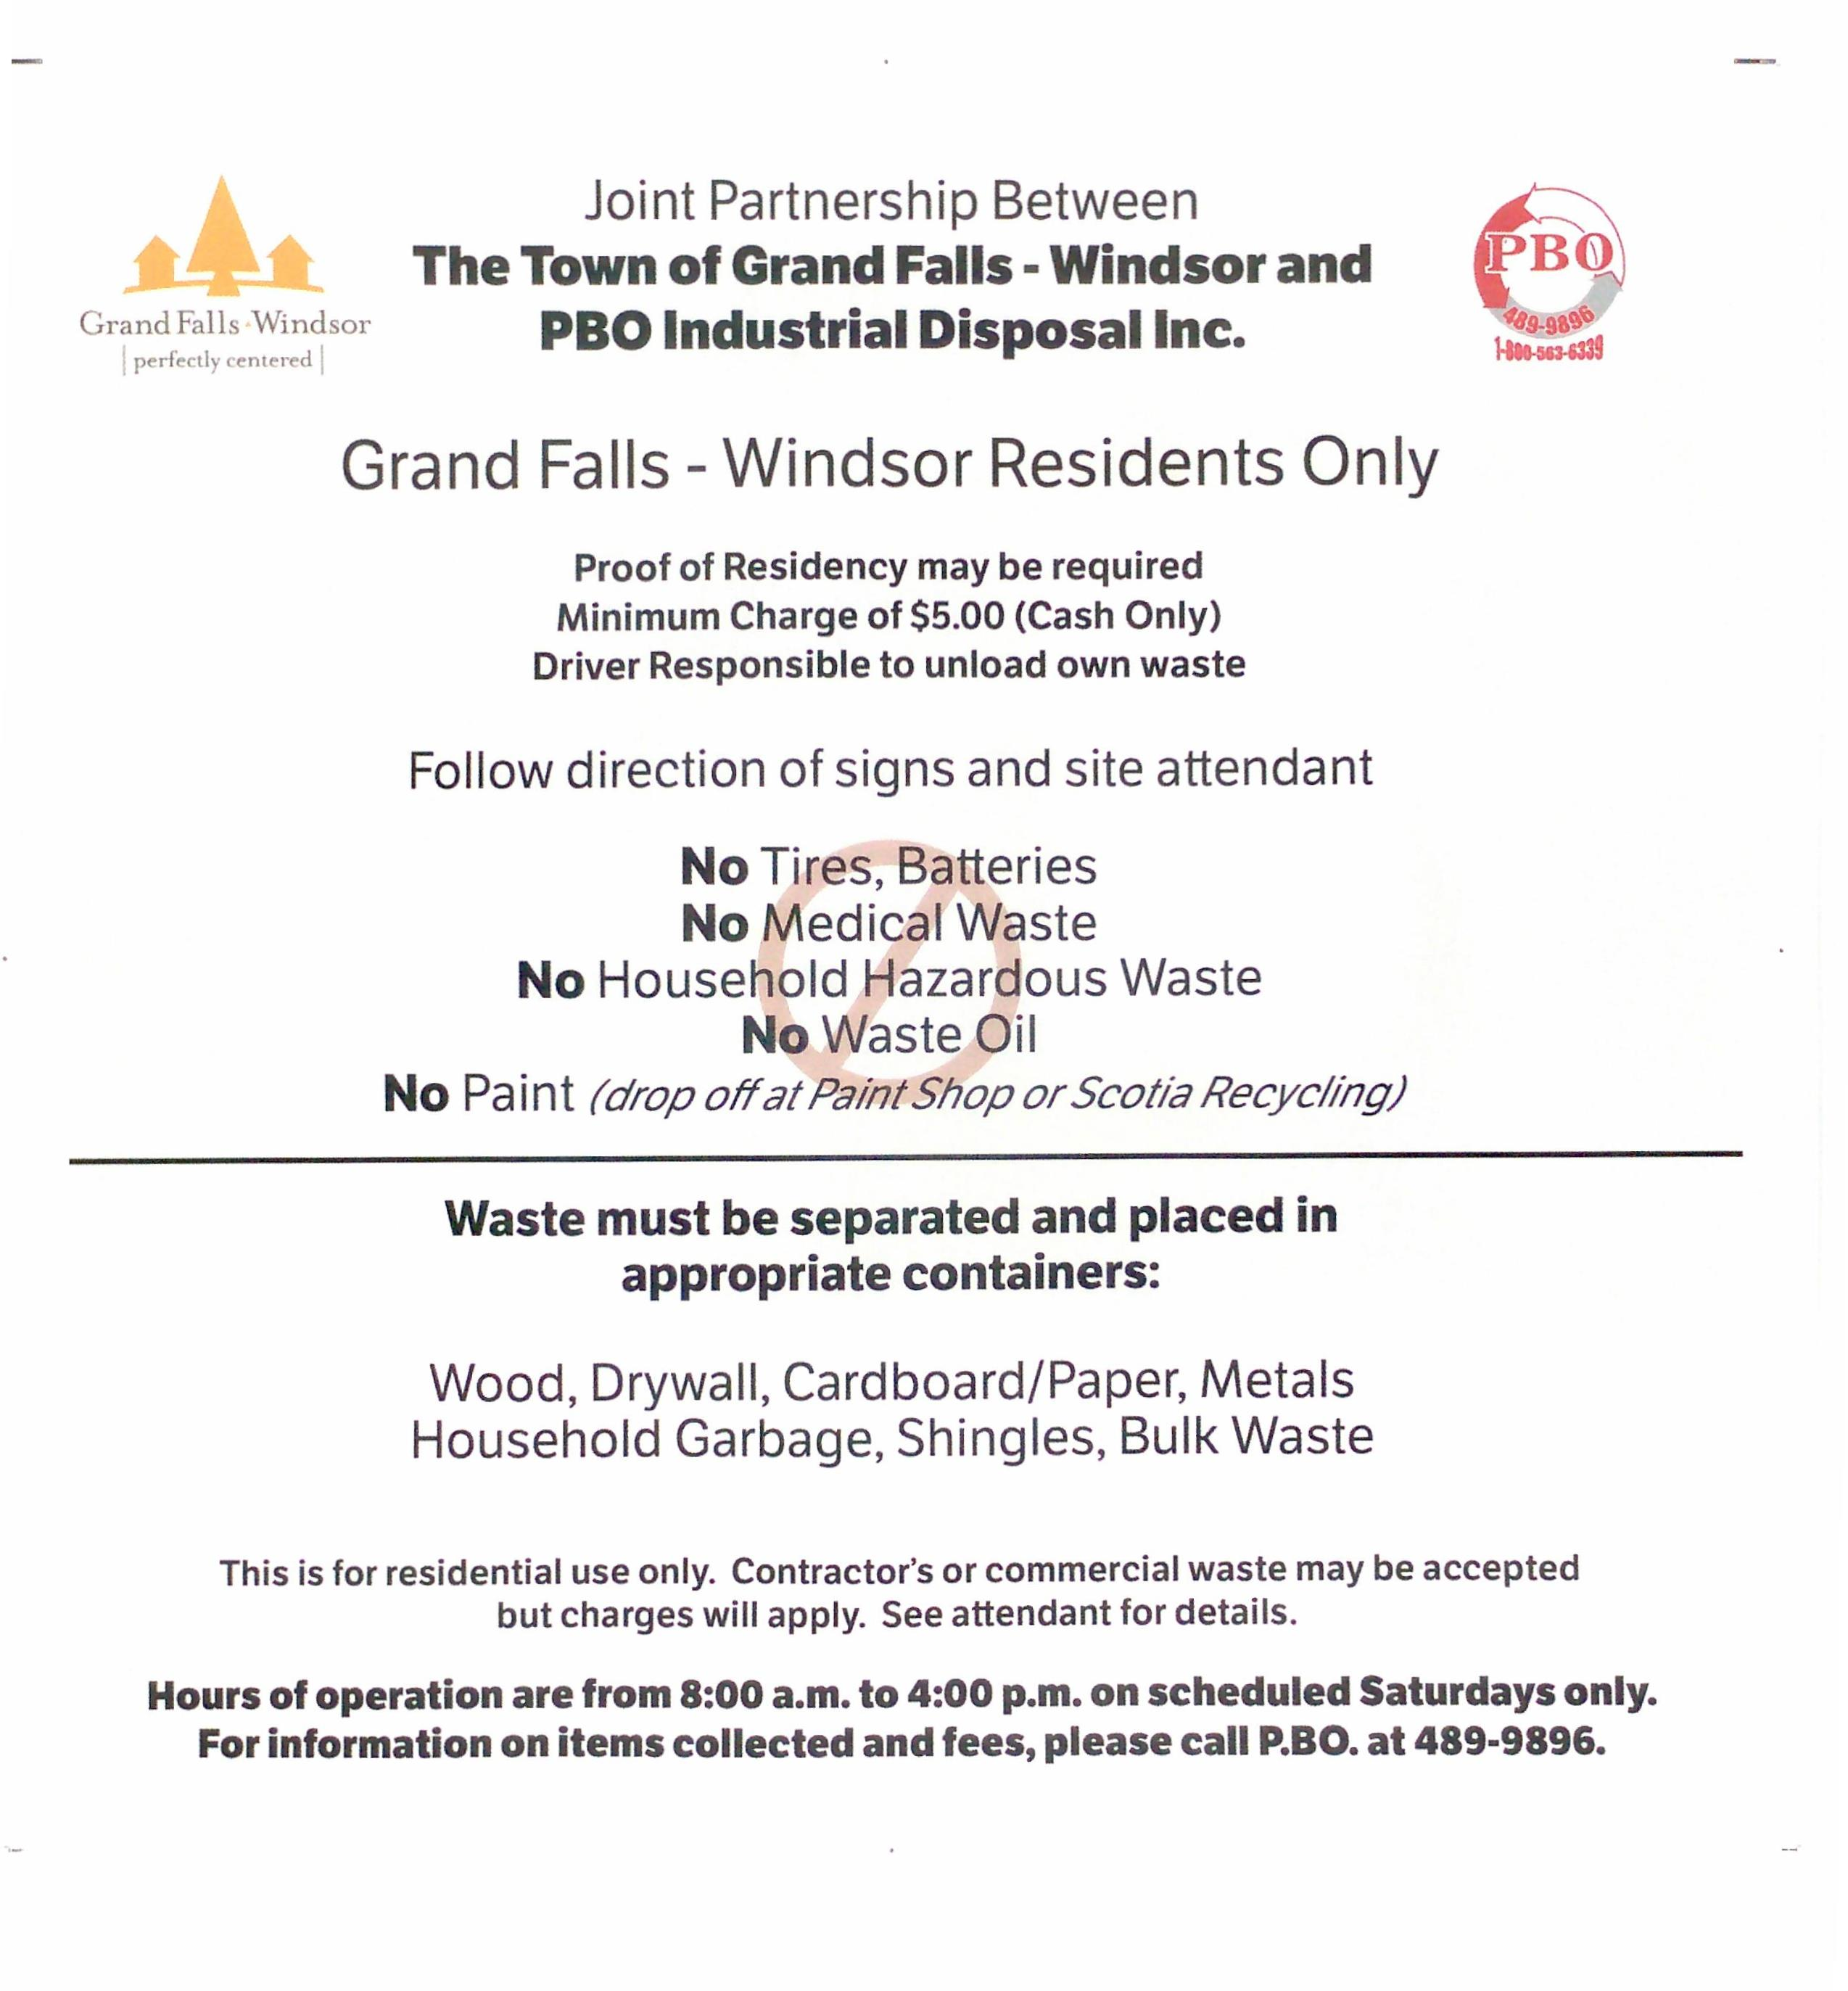 grand falls windsor chatrooms Find grand falls-windsor real estate listings and browse homes for sale at royal lepage, canada's leading real estate brokerage.